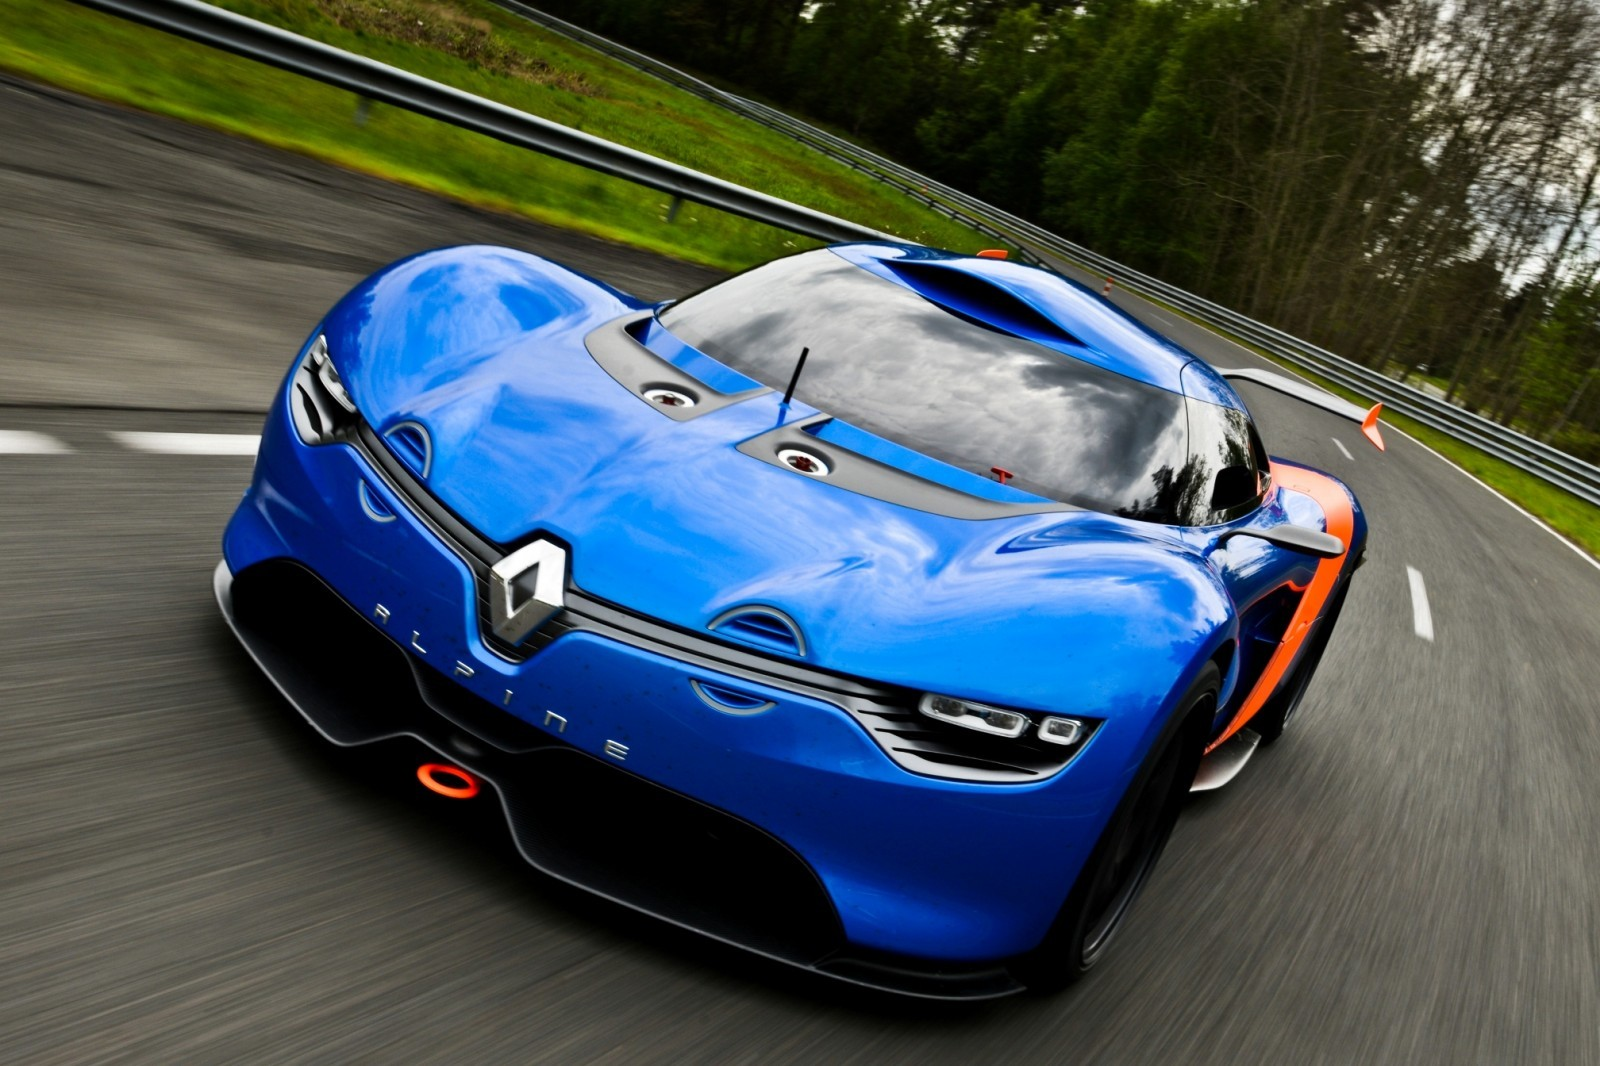 Concept Flashback - 2012 Renault Alpine A110-50 A Blend of M64 and A110 Berlinette 33